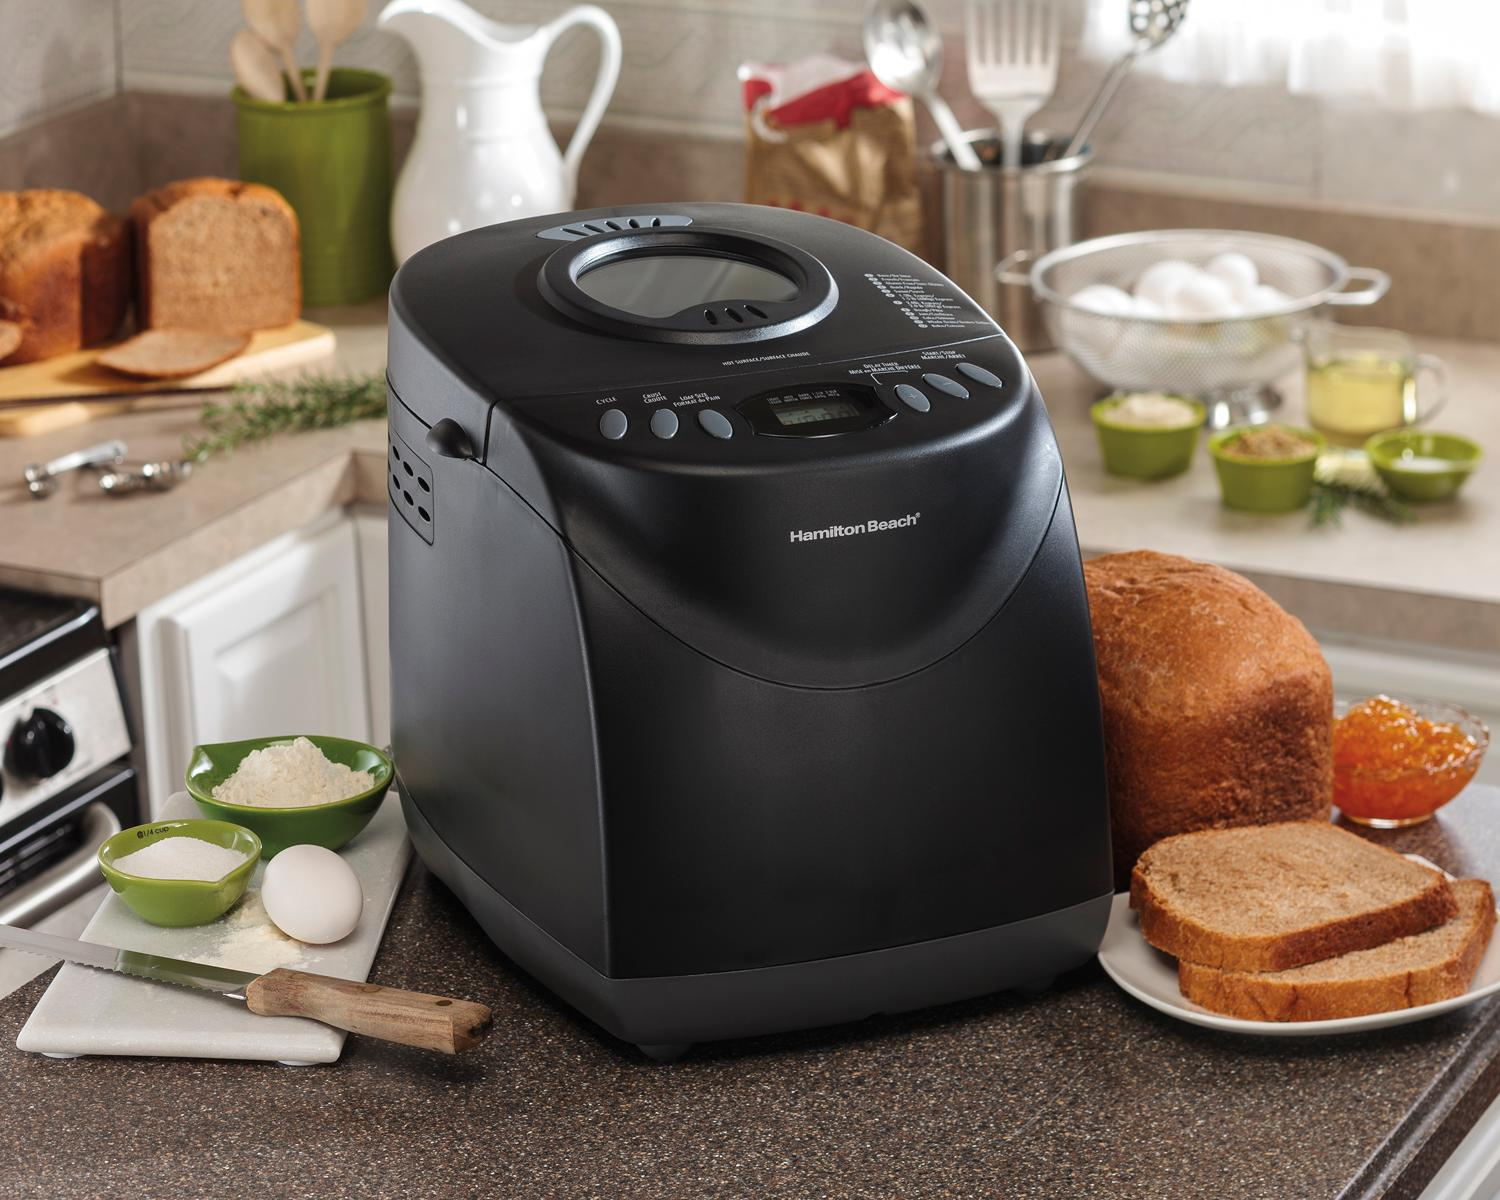 Hamilton Beach Bread Maker 29882